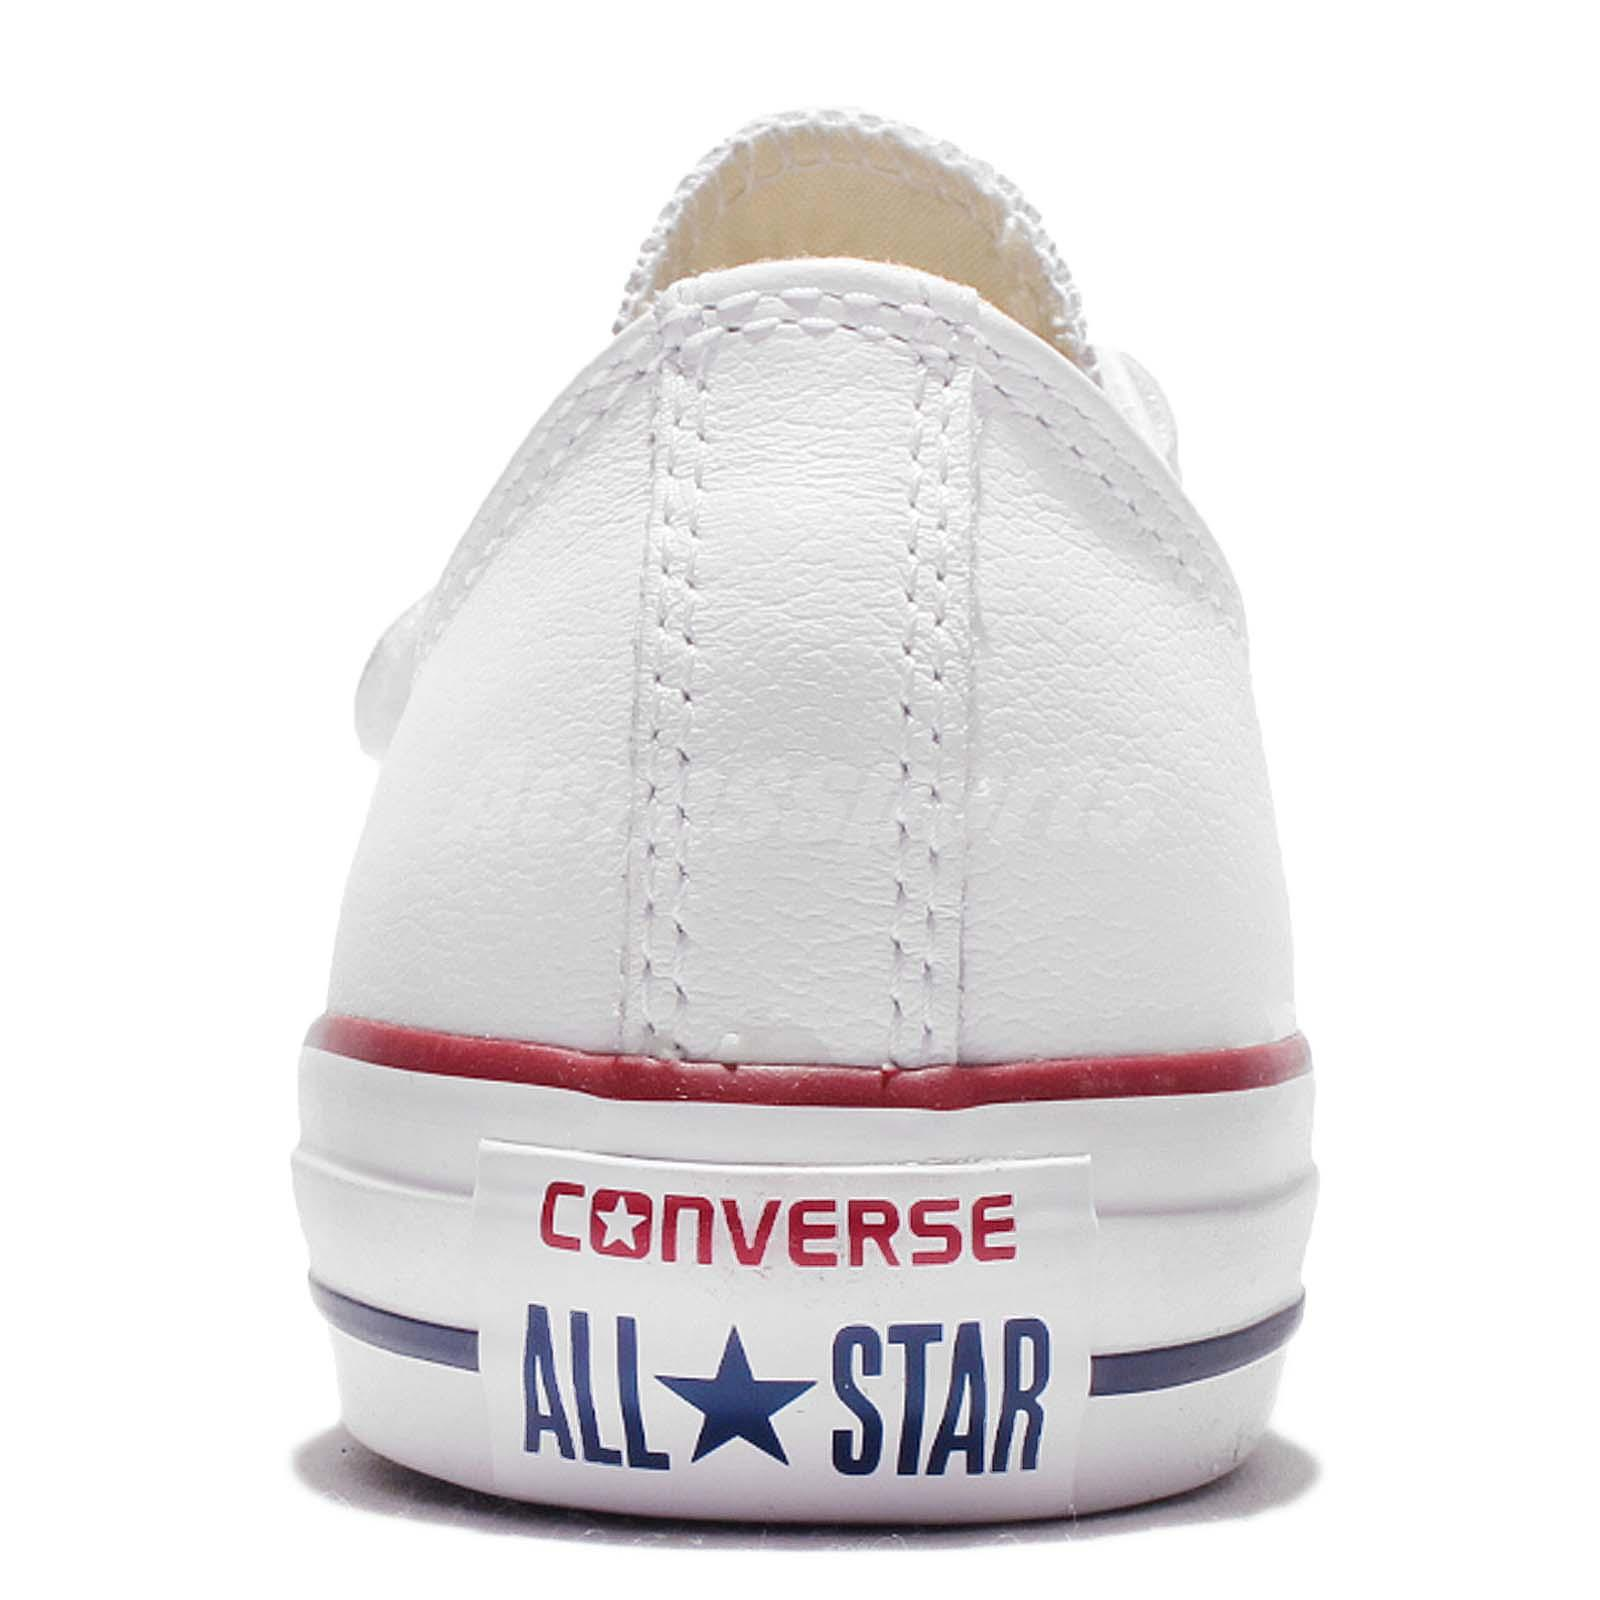 Converse chuck taylor all star v3 strap leather white men shoes size chart nvjuhfo Gallery